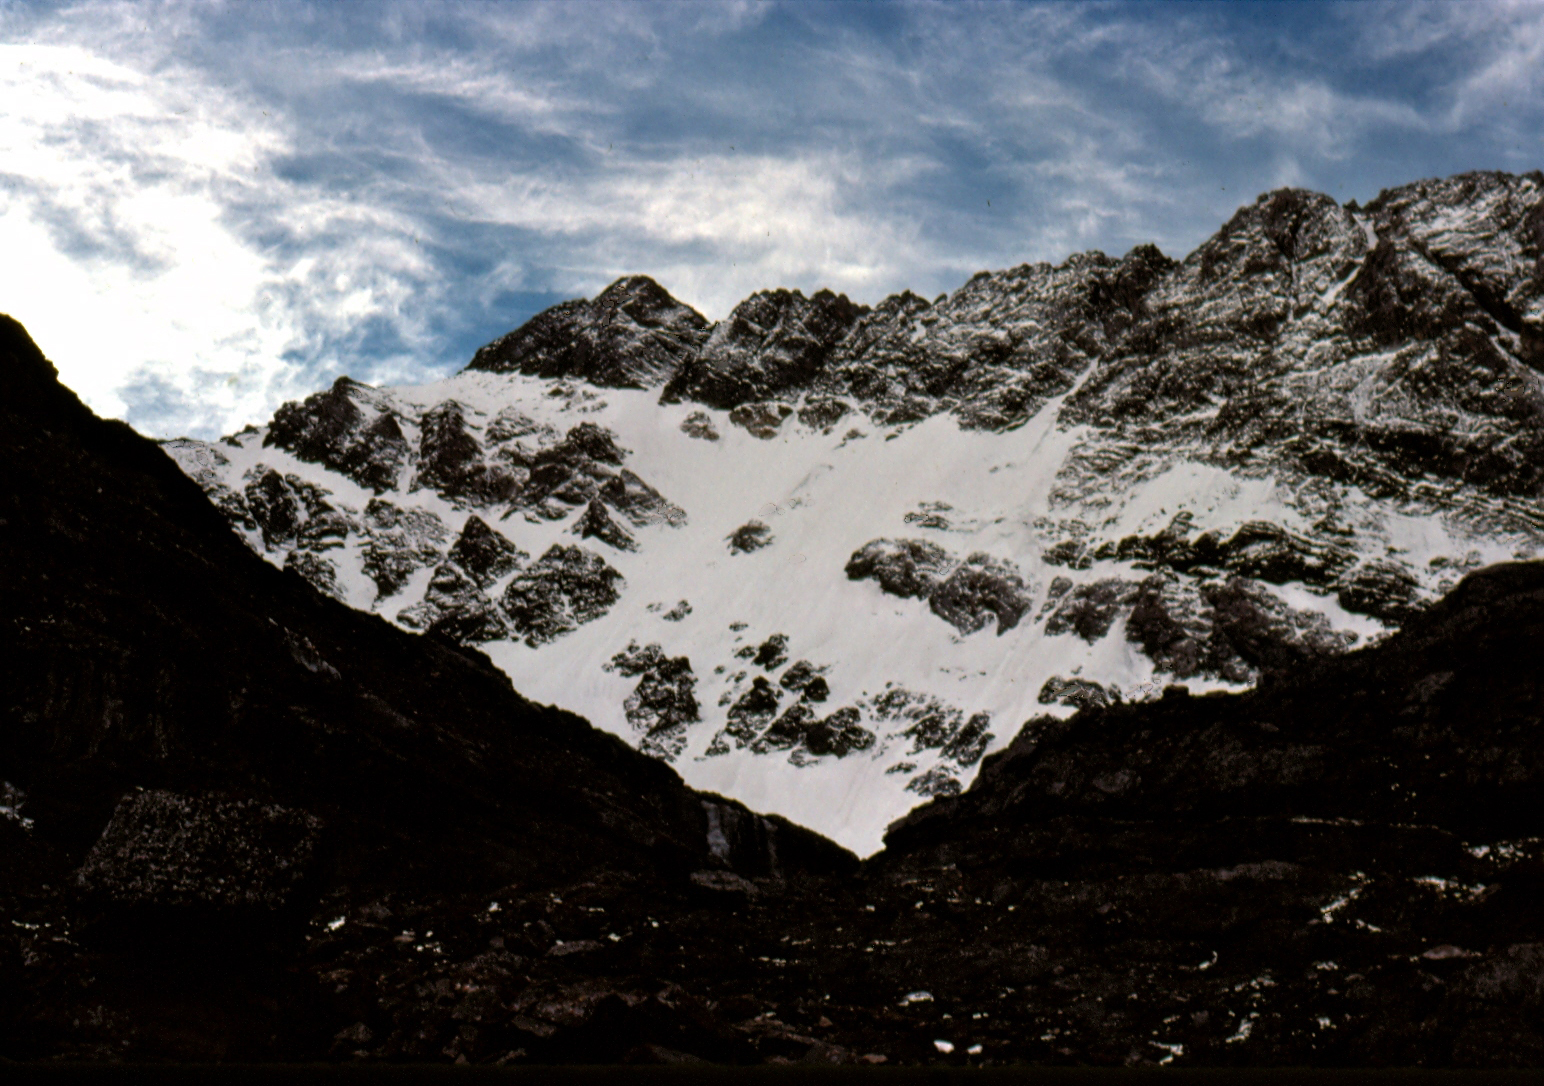 North Face of Mt Borah - Oct, 1976. Photo by Bob Boyles